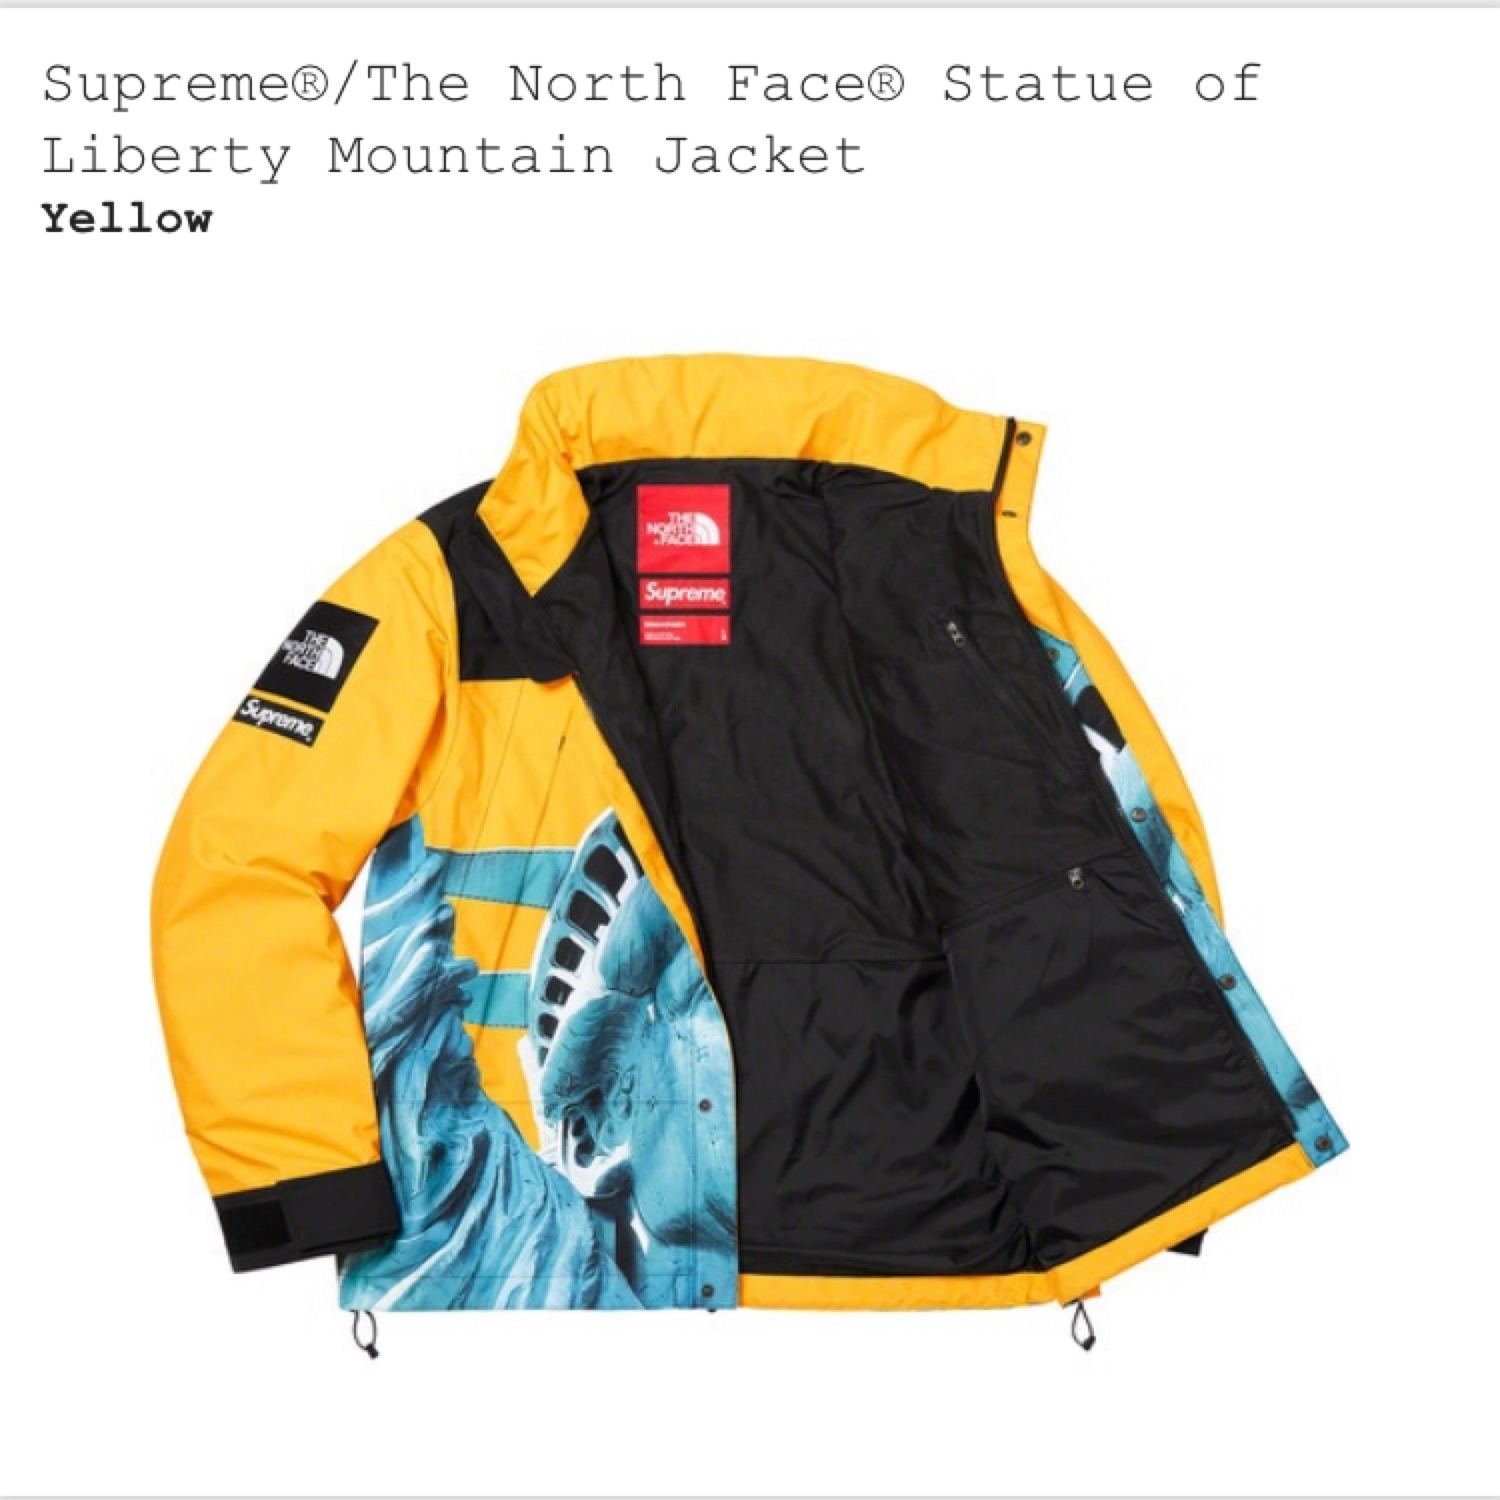 Supreme The North Face Statue Of Liberty Jacket